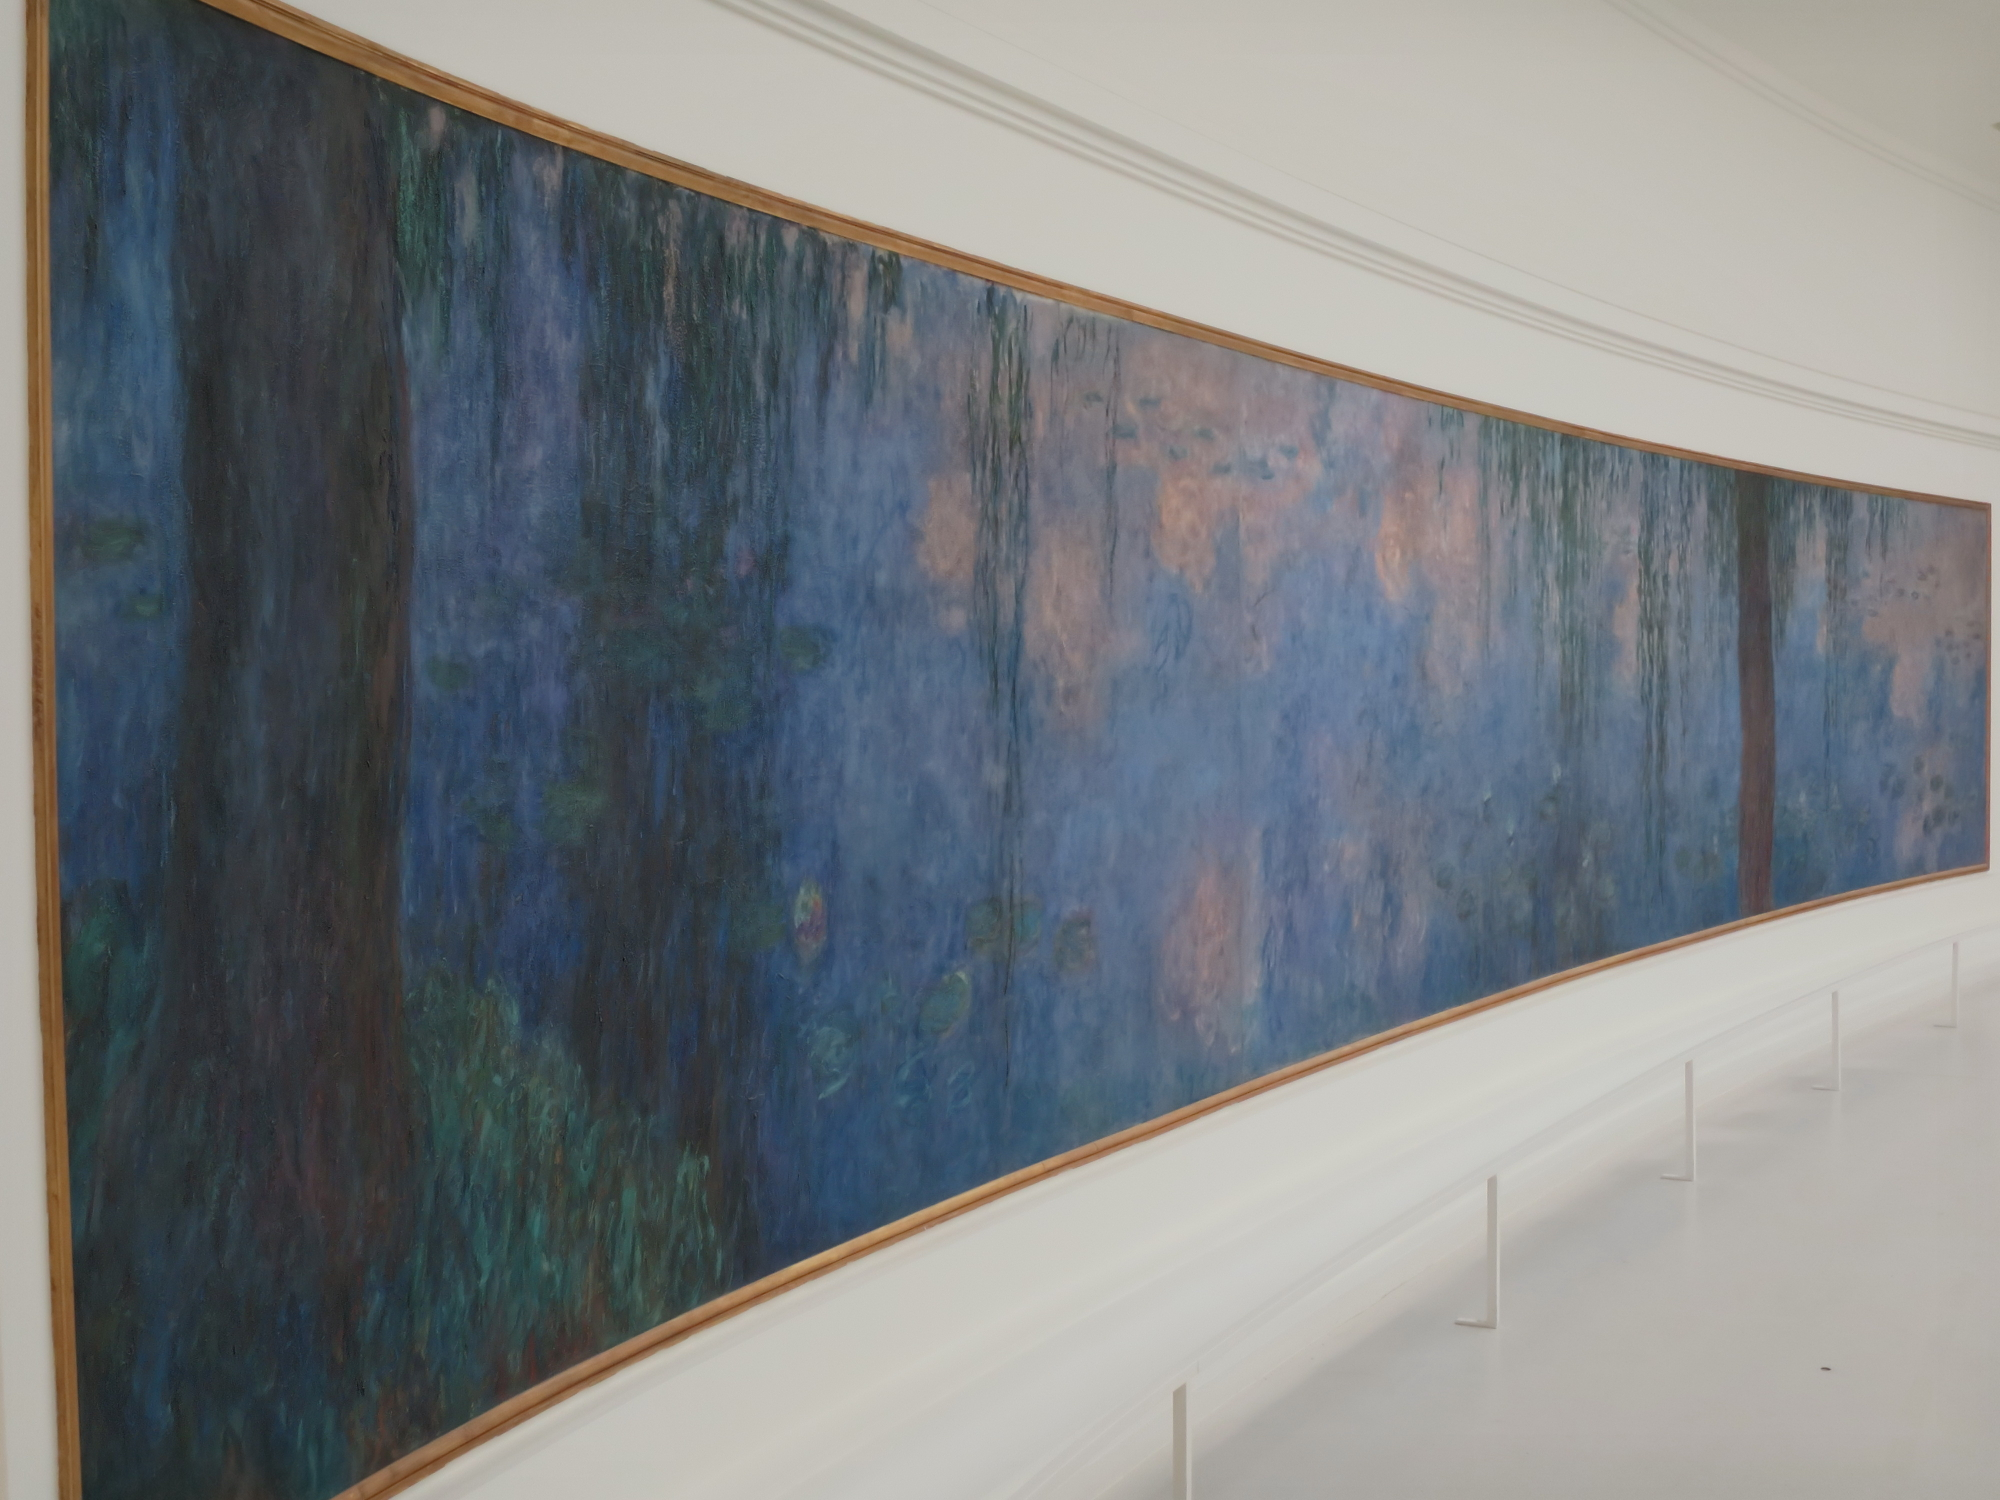 Monet, Les Nymphéas (water lillies) at l'Orangerie museum